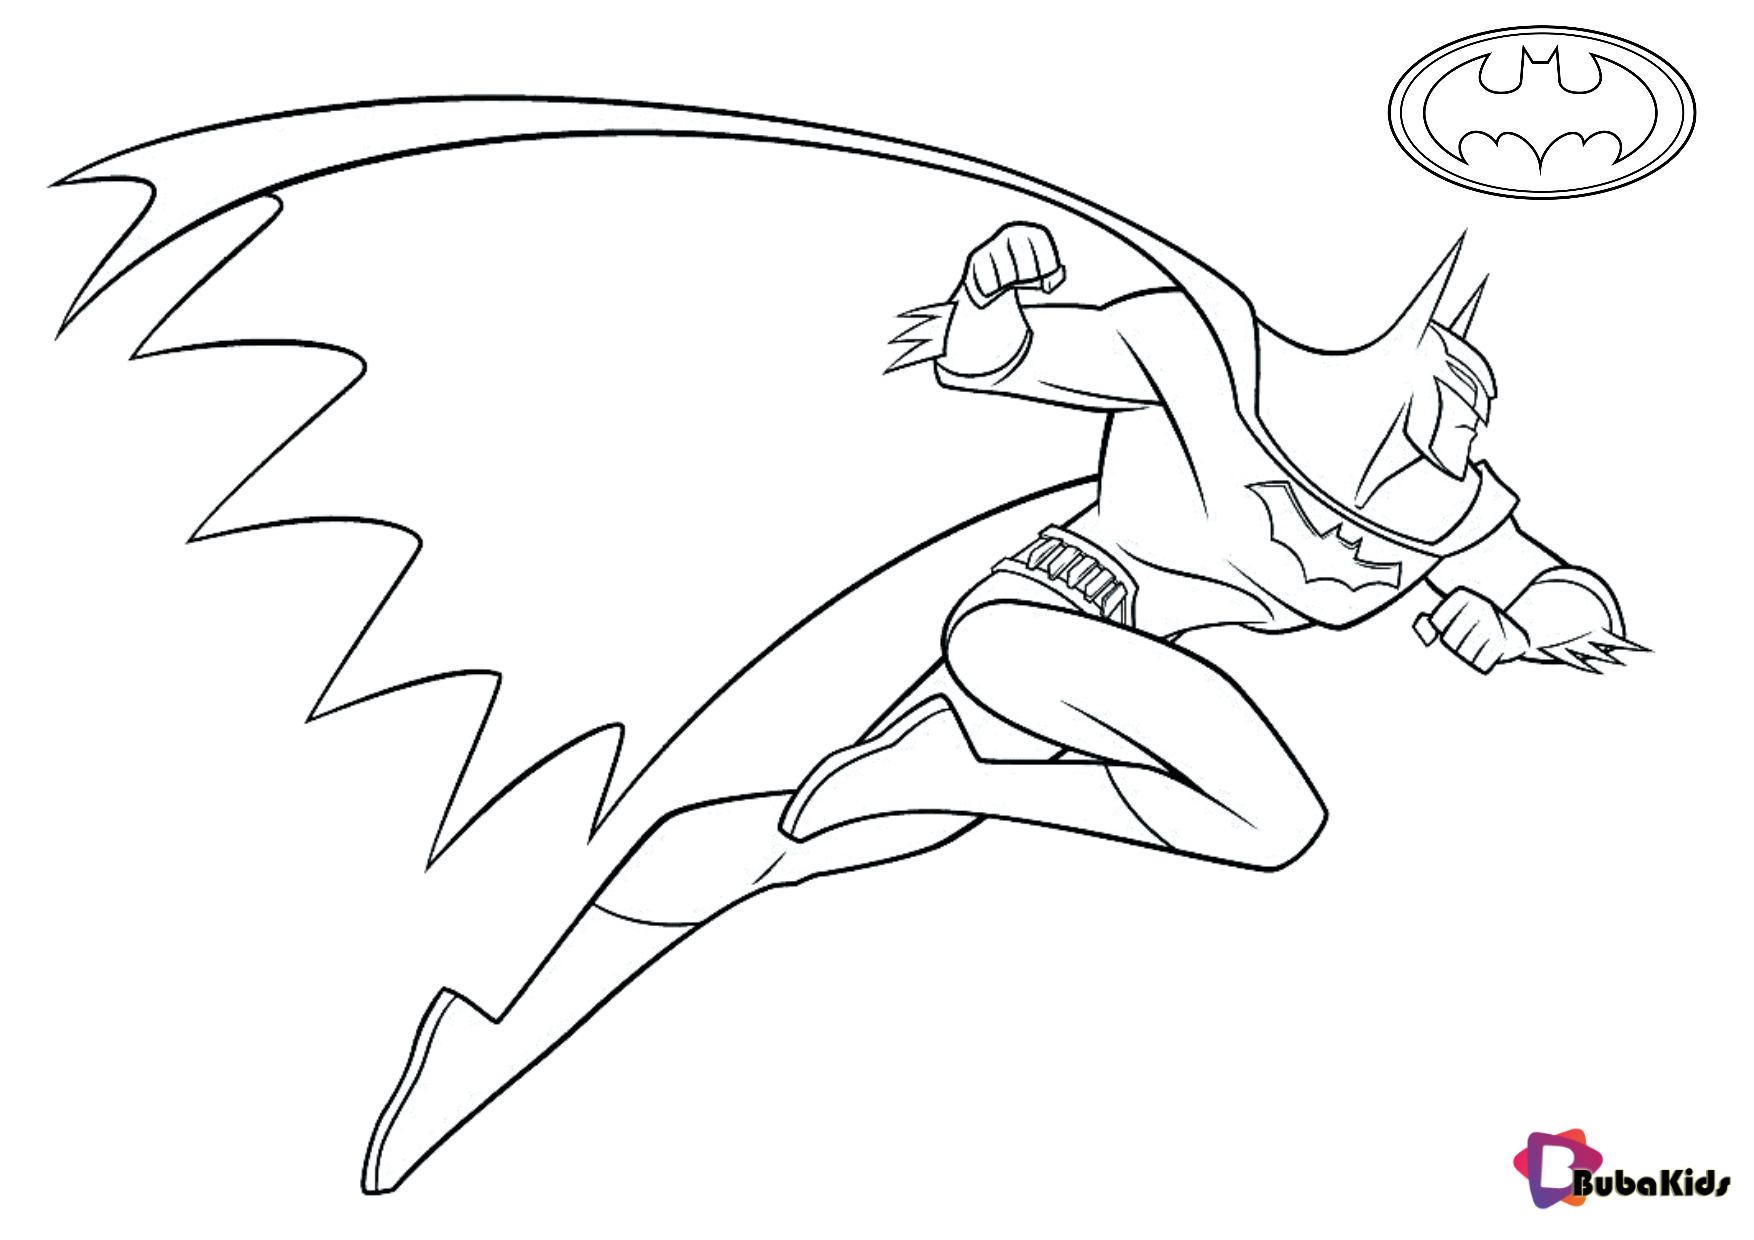 Free coloring picture Batman in action superhero coloring pages for kids Wallpaper